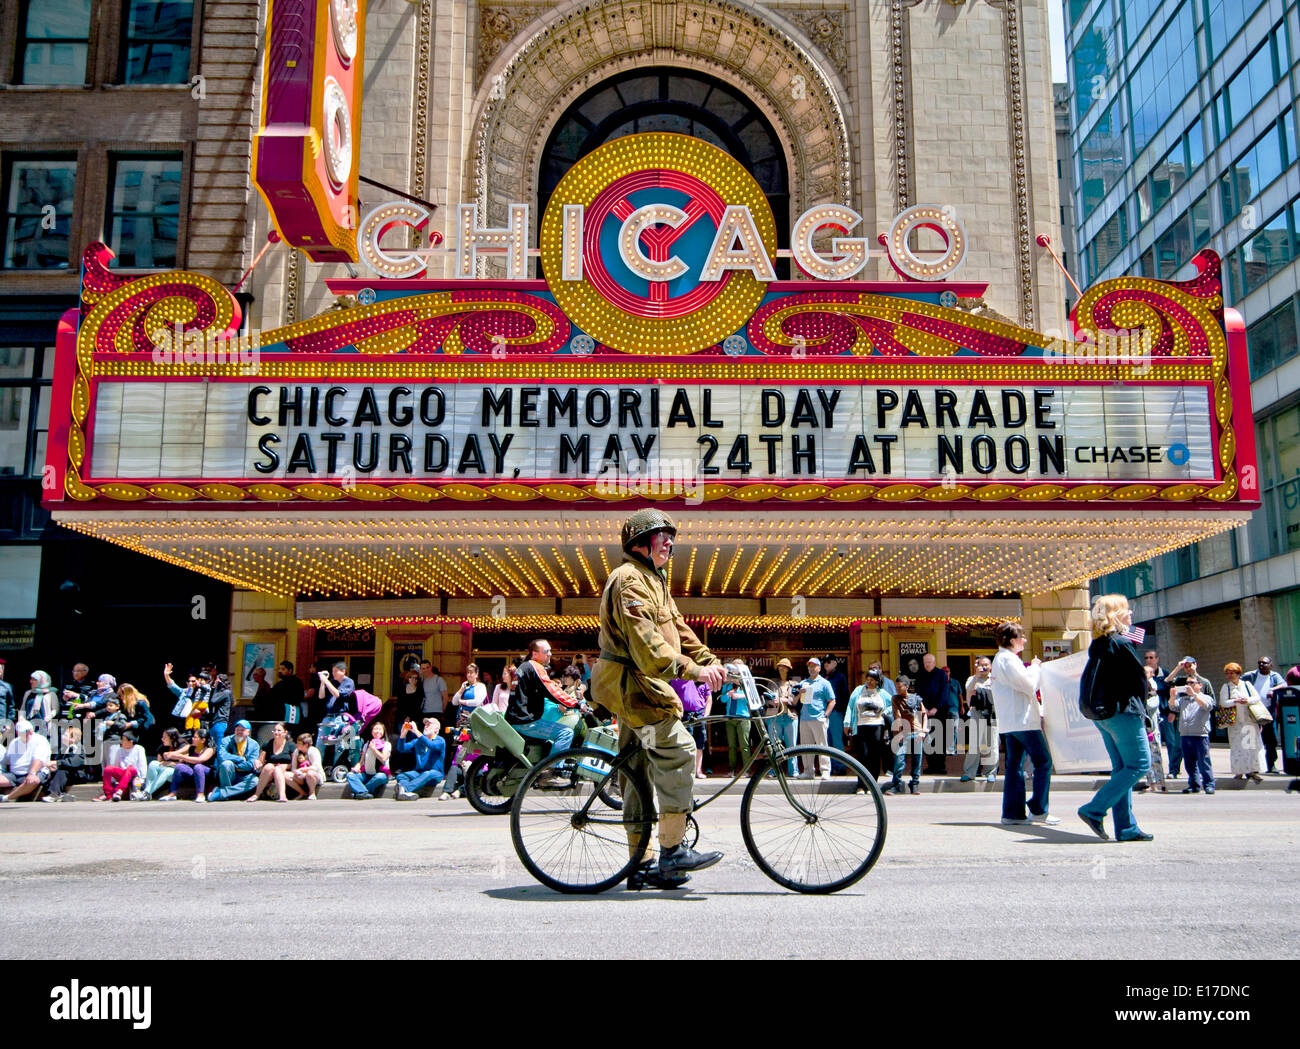 A veteran in WWII uniform rides a bicycle past the Chicago Theatre during a Memorial Day Parade down State Street  May 24, 2014 in Chicago, Illinois. - Stock Image